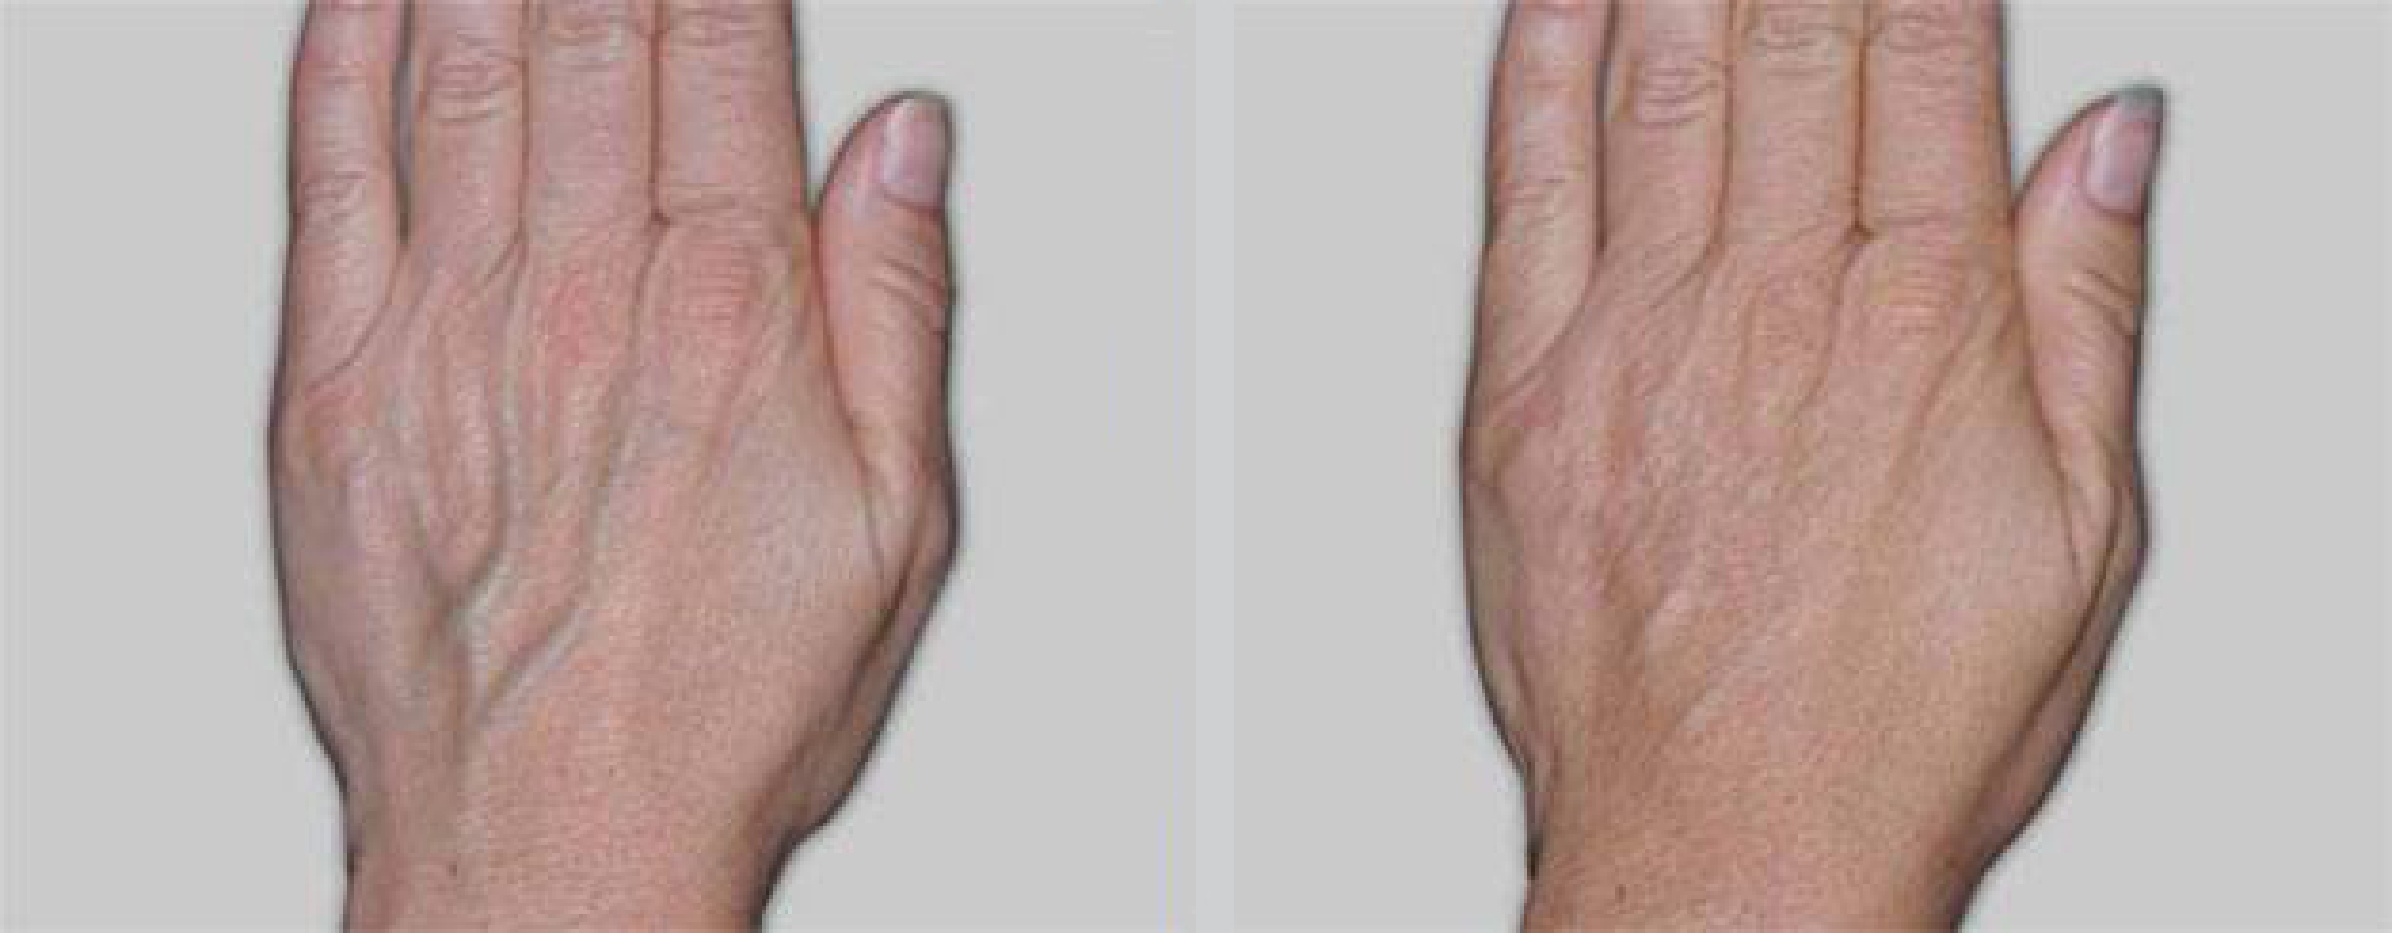 Views of a woman\'s hands before and after Radiesse dermal filler injections to reduce the appearance of veins and aging.